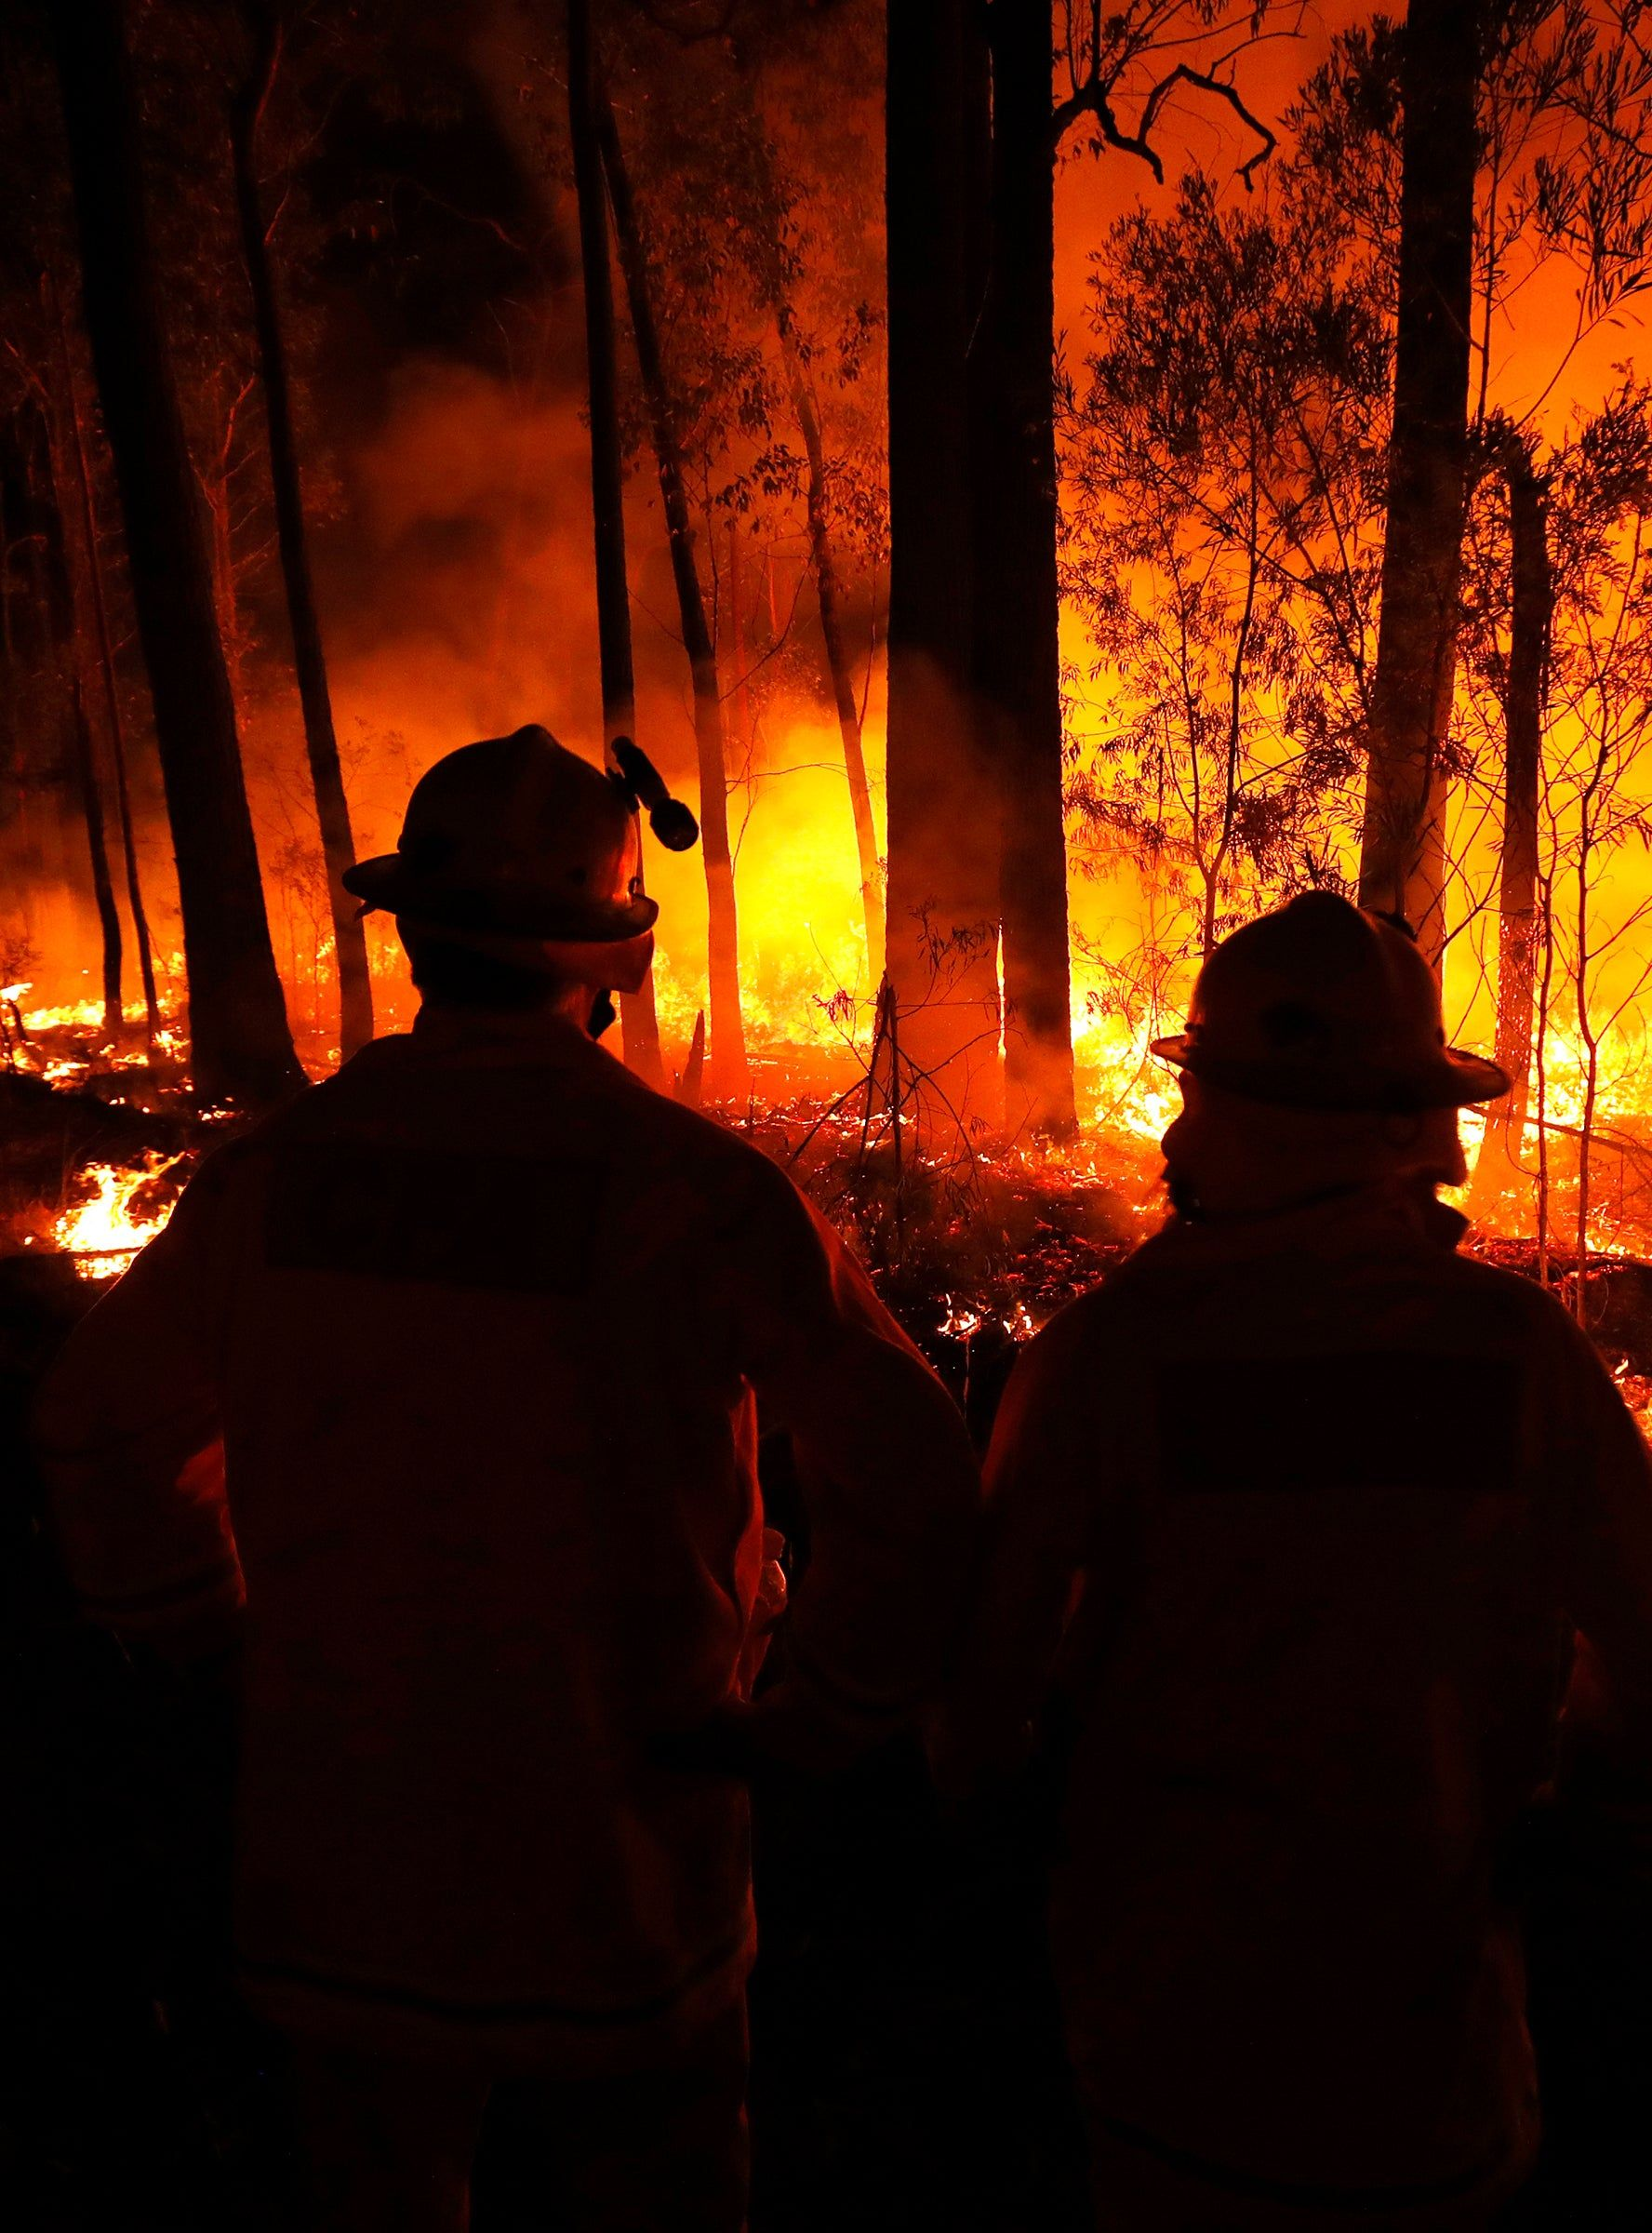 How To Help With Devastating Australia Fires in 2020